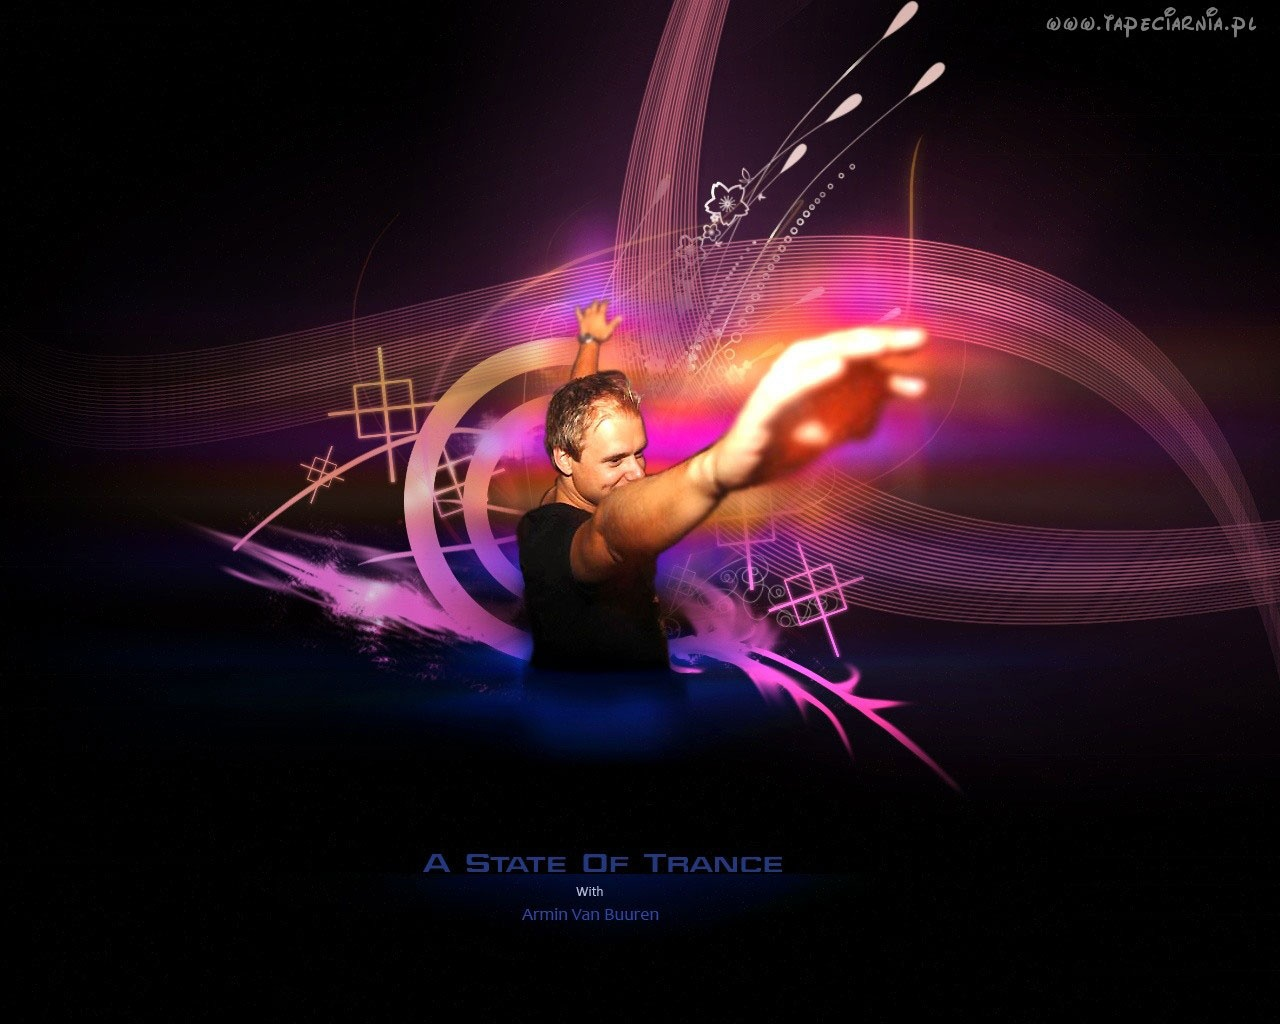 1280x1024 A State Of Trance wallpaper music and dance wallpapers 1280x1024